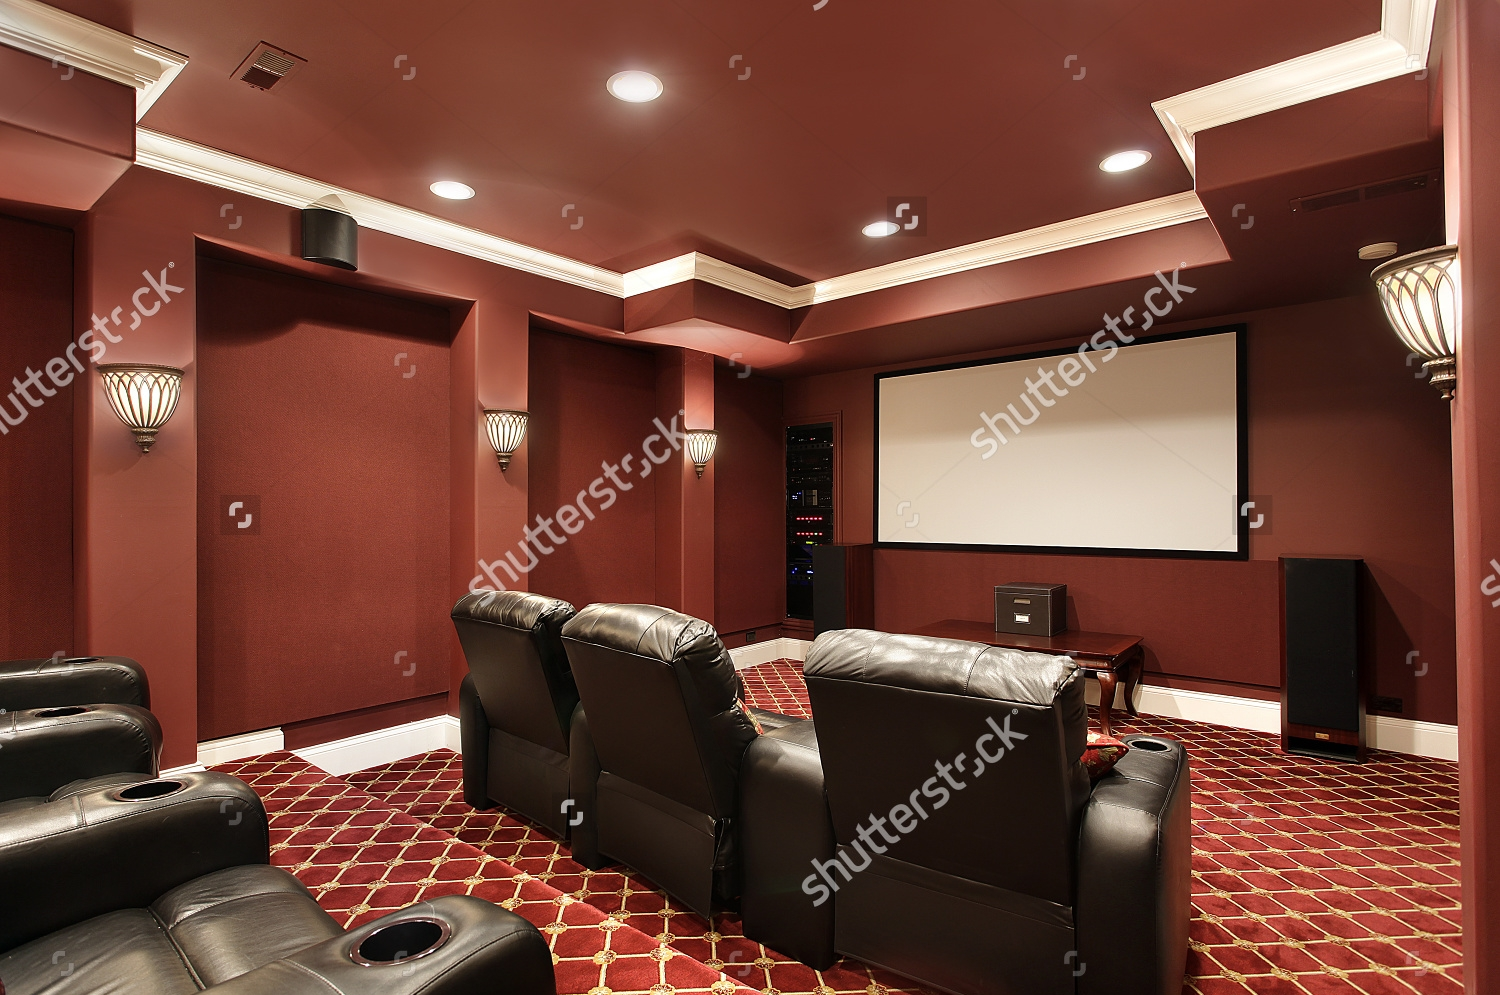 stock-photo-theater-room-in-luxury-home-with-stadium-seating-59745104.jpg